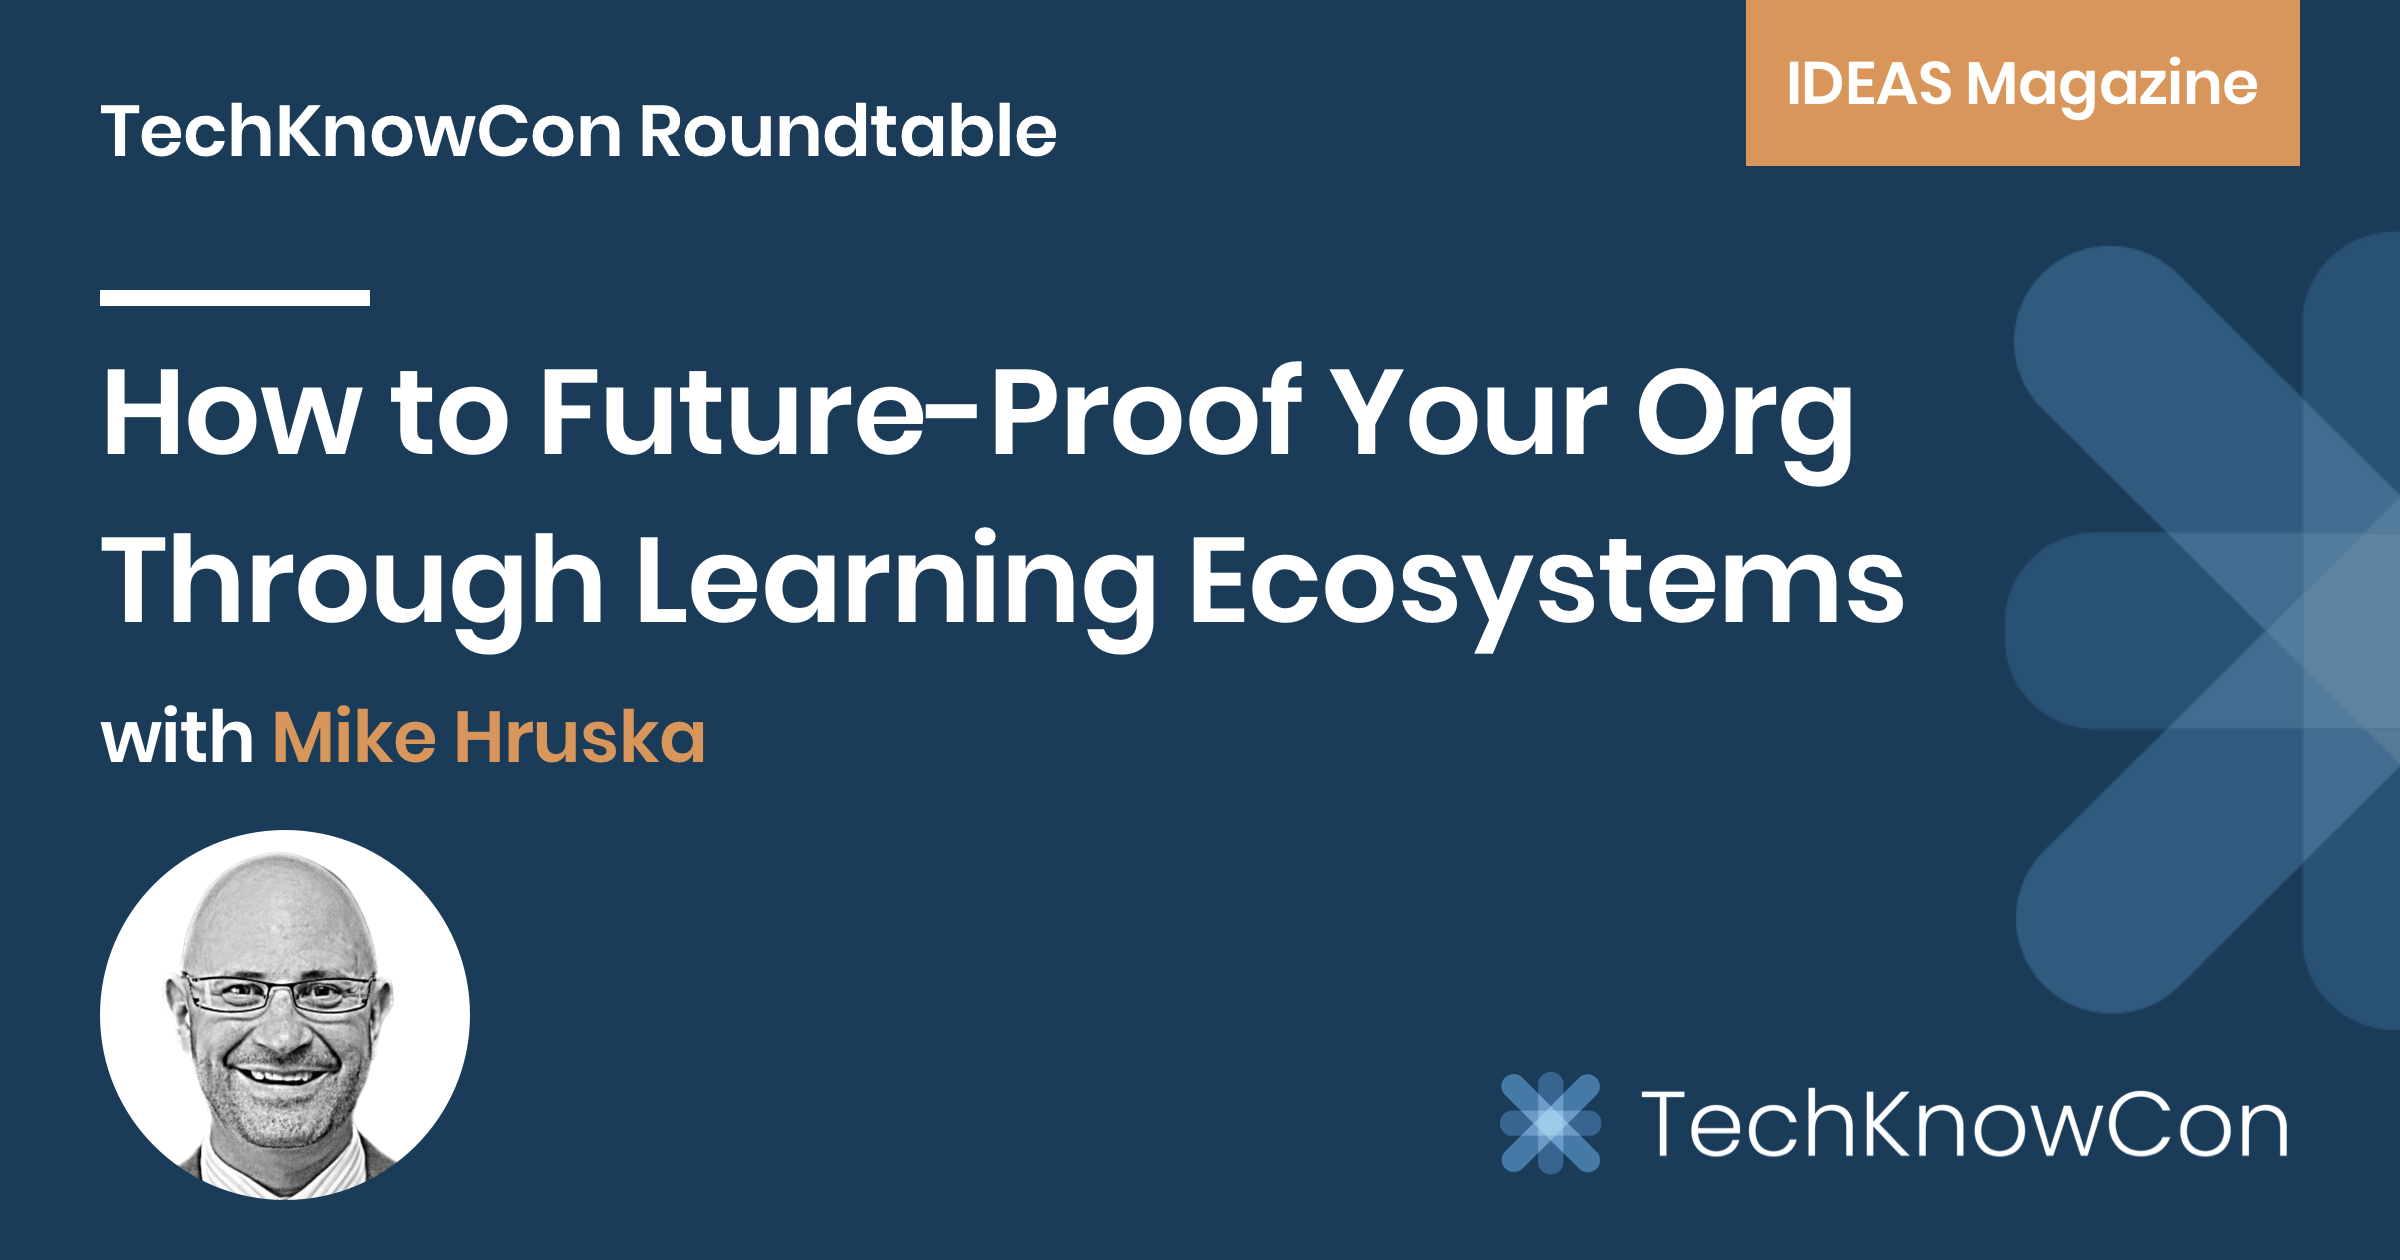 TechKnowCon - Future-Proof Your Org Through Learning Ecosystems